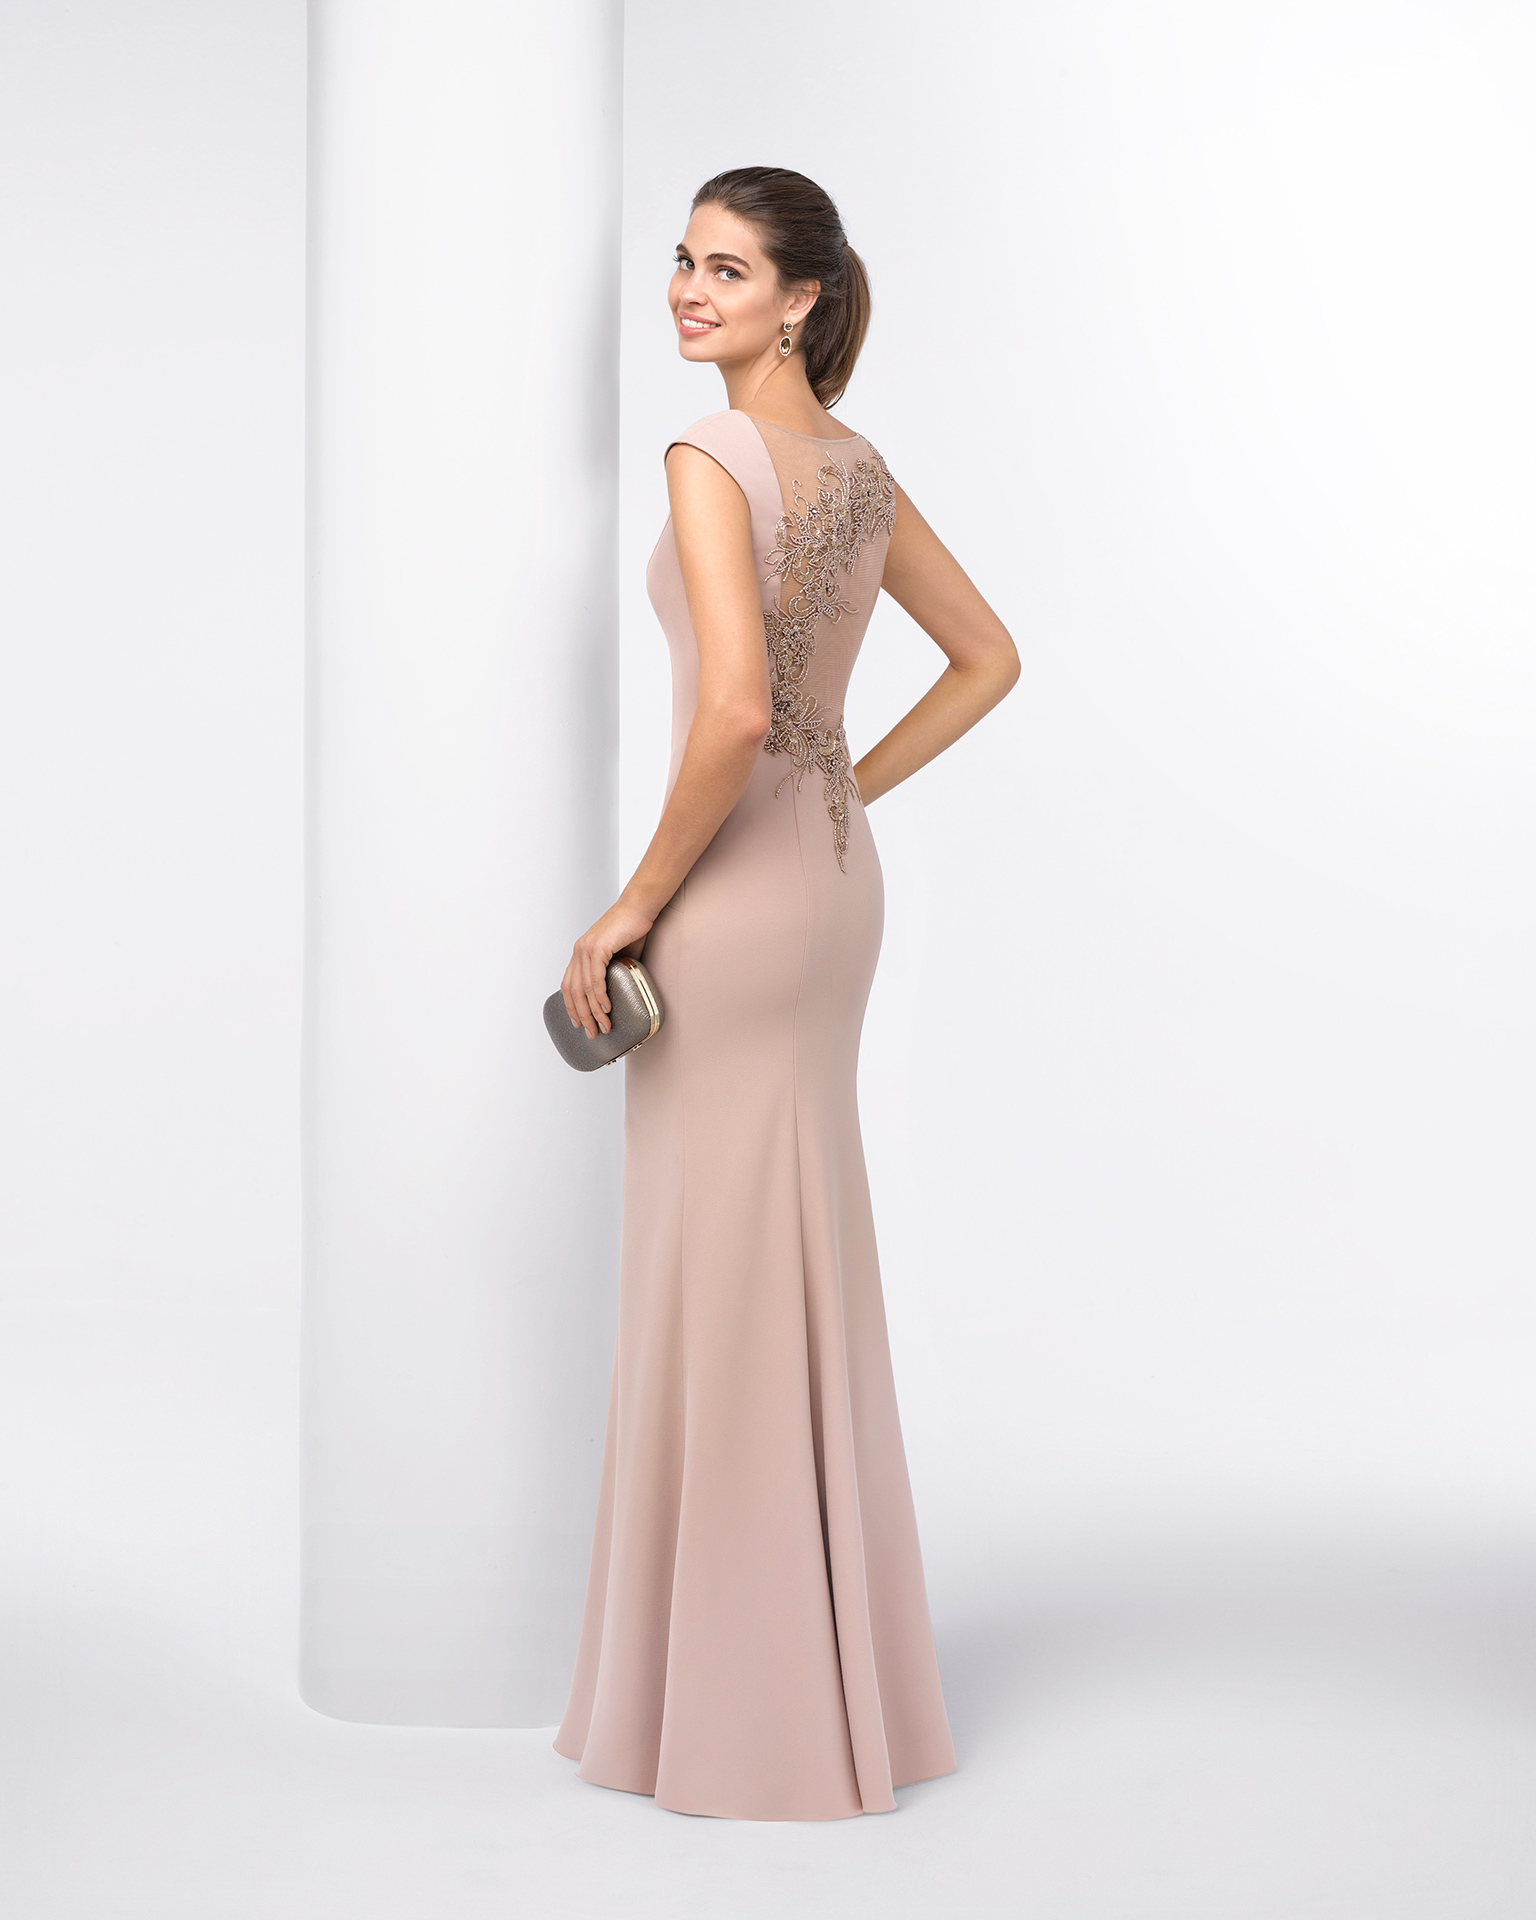 Sleeveless crepe cocktail dress with square neckline and beading on neck and back. Available in cobalt, mocha, mauve and green. 2018 FIESTA AIRE BARCELONA Collection.